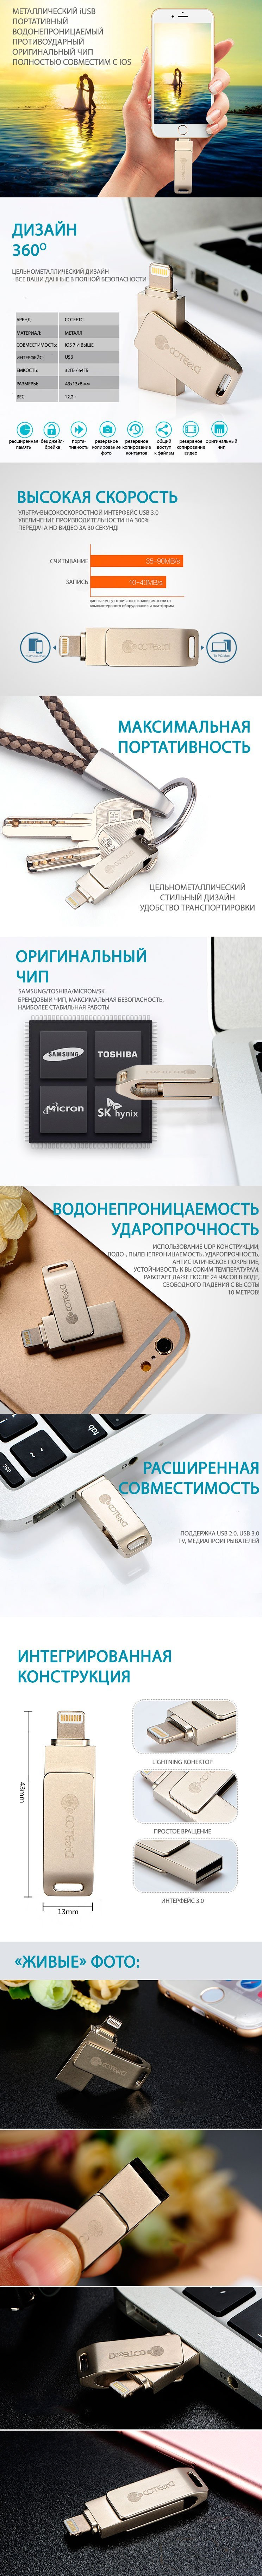 Флешка Coteetci iUSB 64Гб для iPhone, ipad, ipod